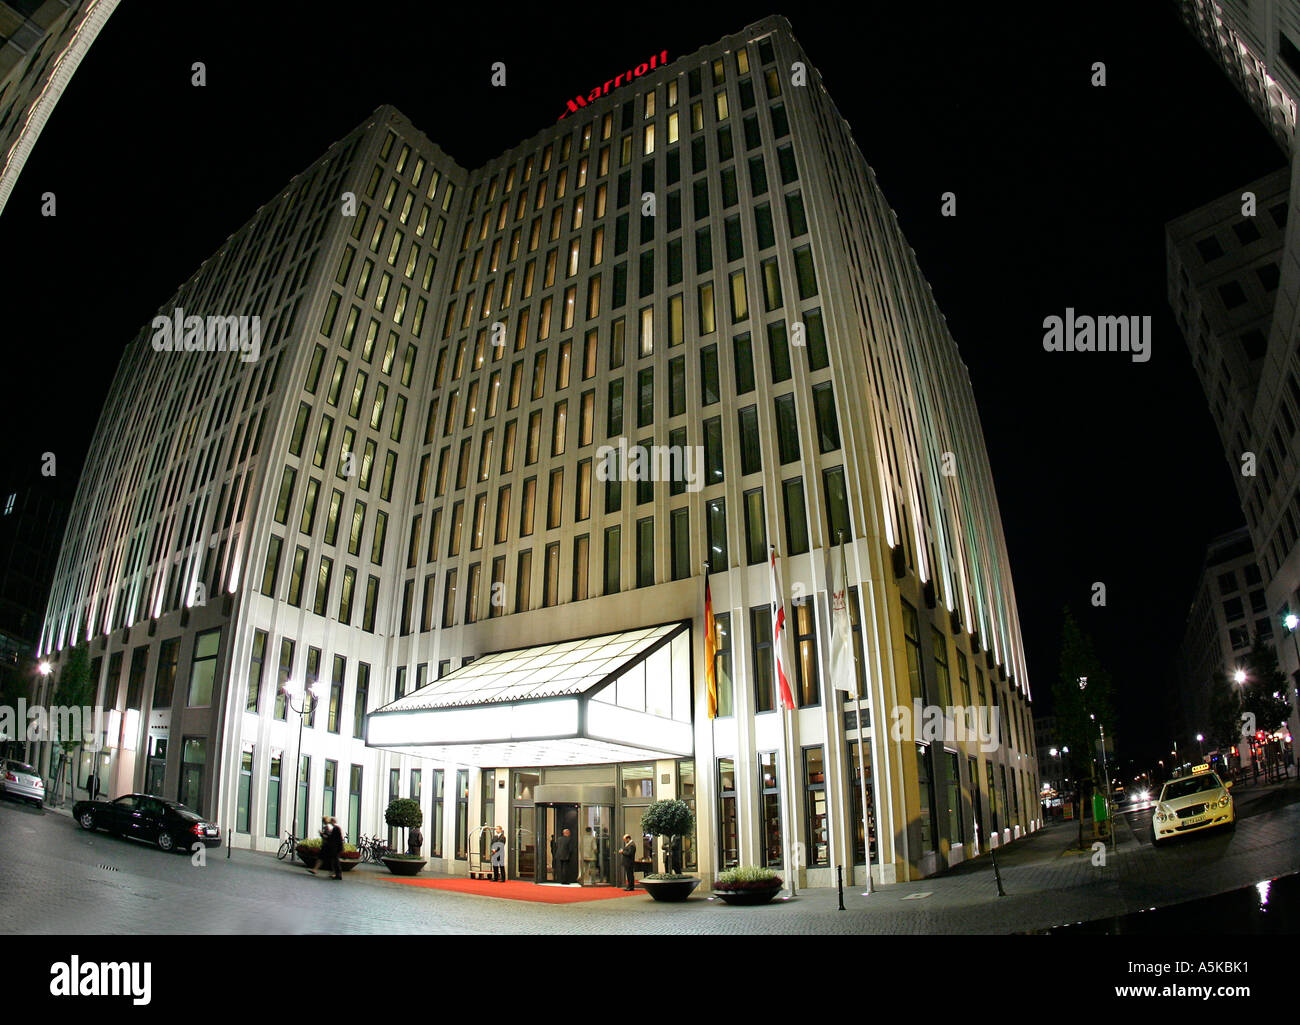 Mariott Hotel at Inge Beisheim Plaza in Berlin during the Festival of Lights - Stock Image